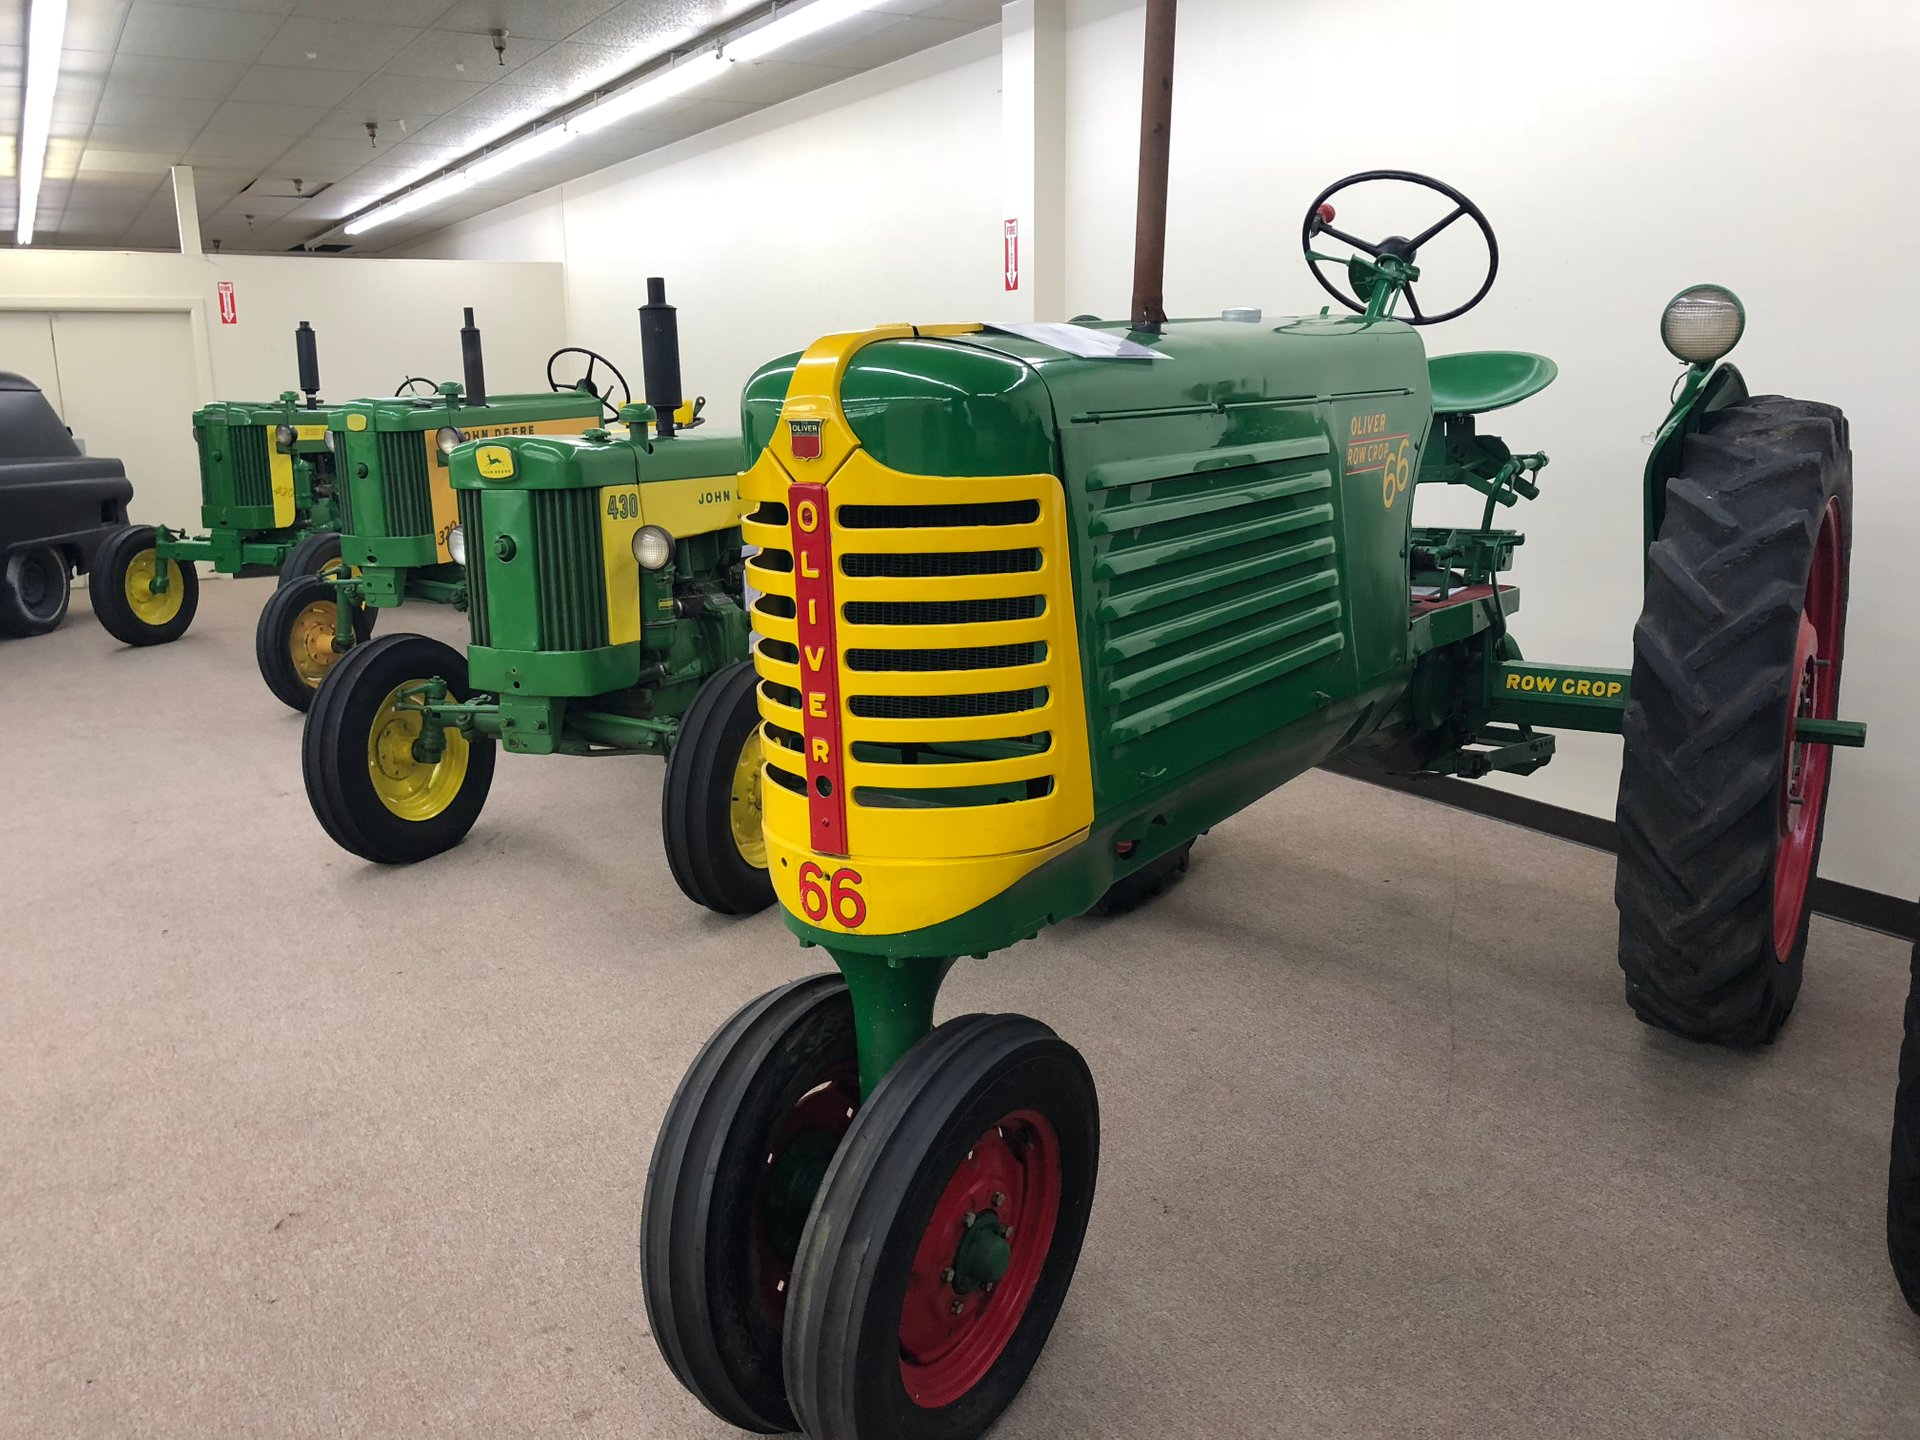 1940 Oliver 66 Row Crop Tractor